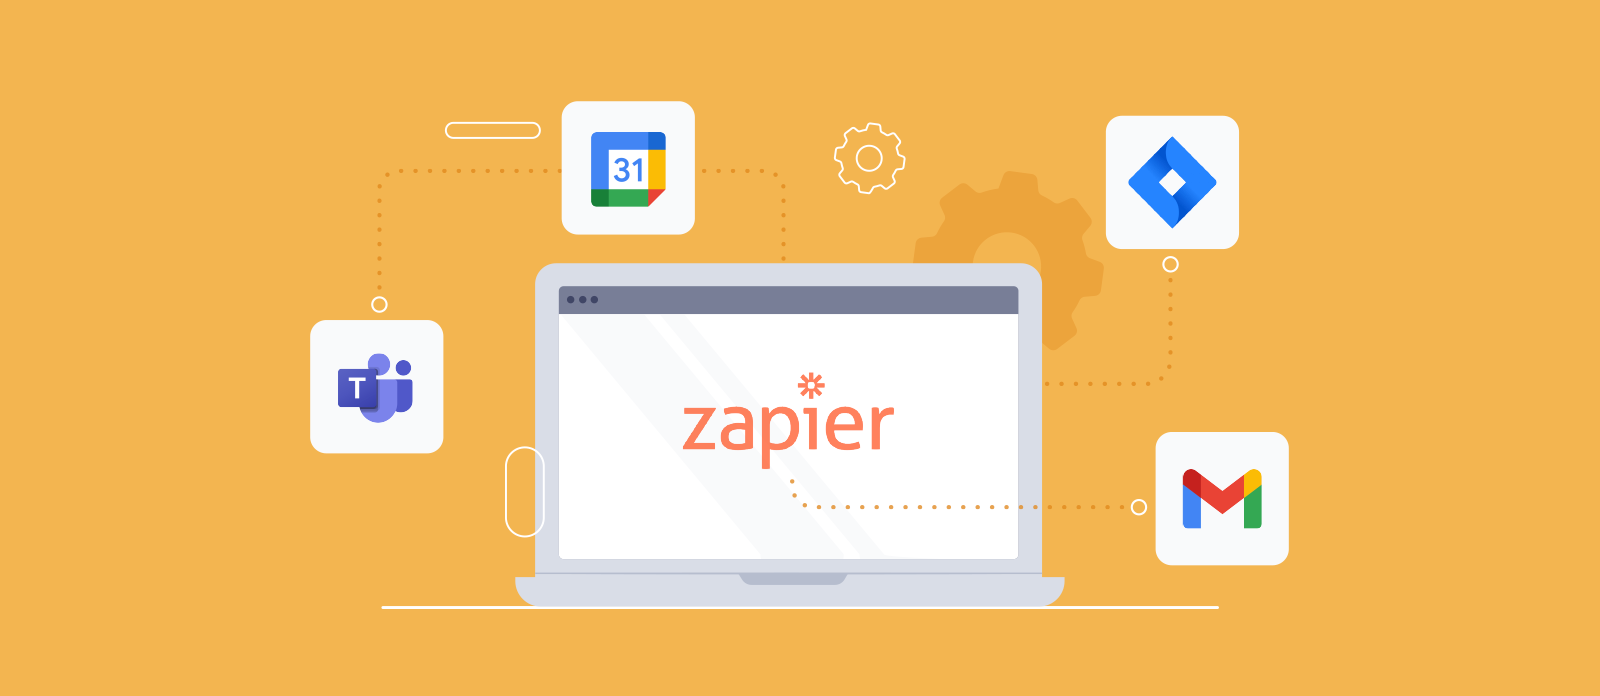 How to connect TeamGantt with Google Workspace, Jira, and Microsoft Teams using our Zapier integration